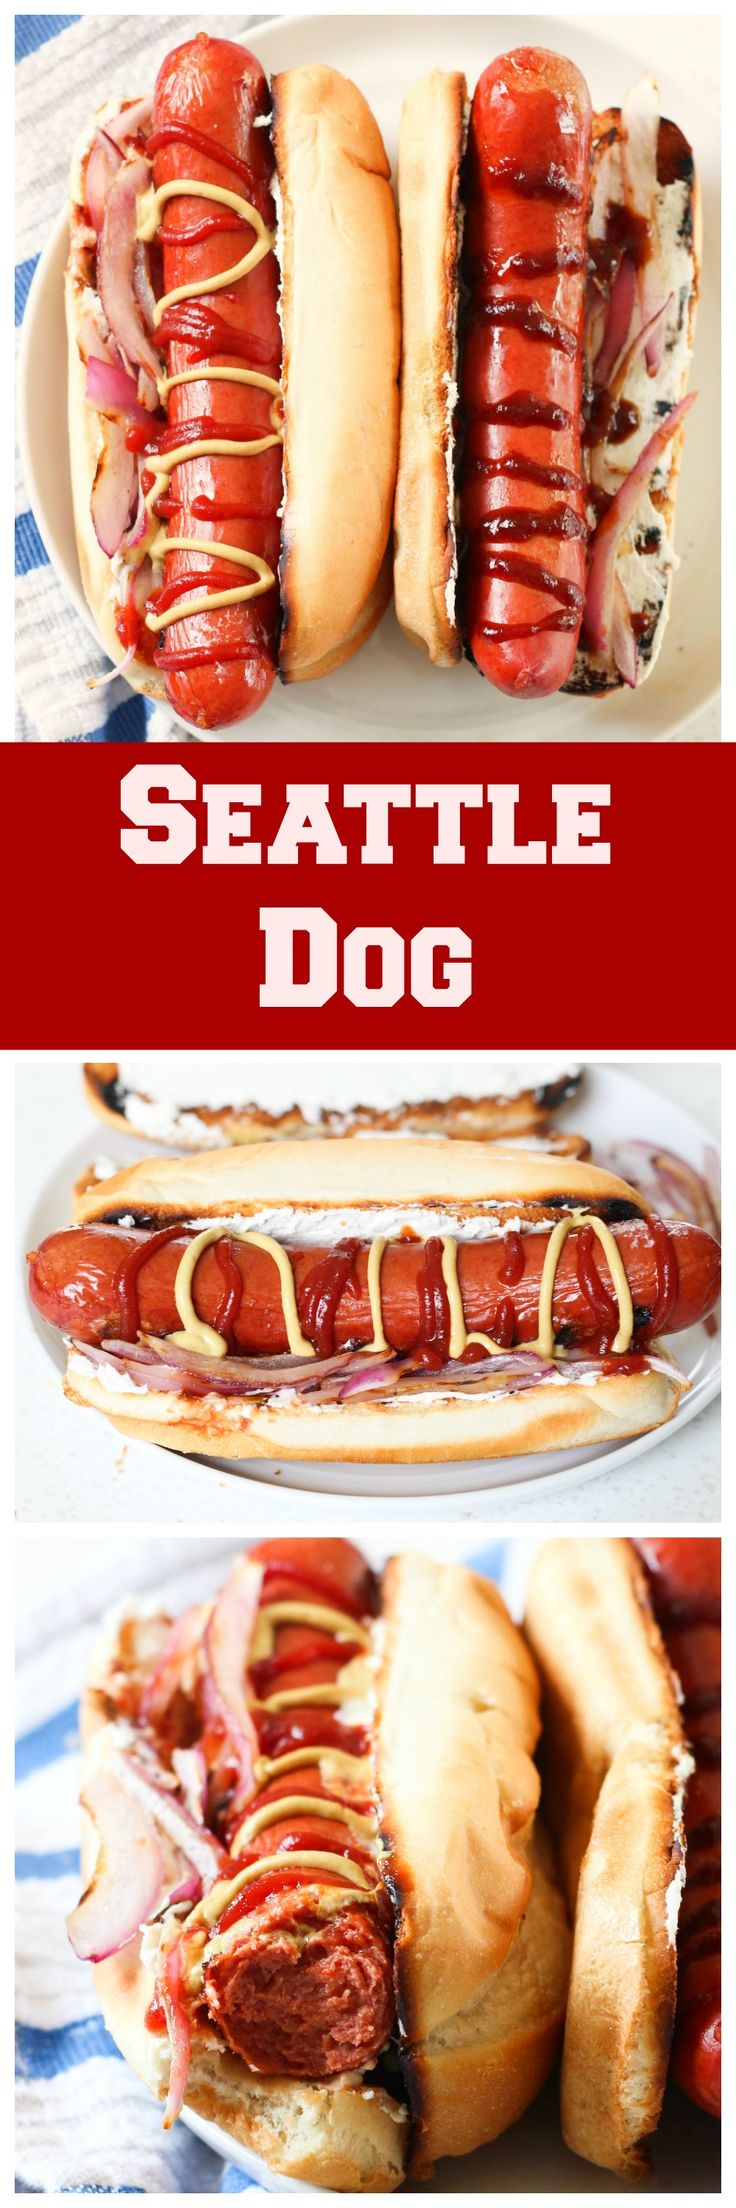 Seattle Style Hot Dog - A hot dog with cream cheese & all the fixings. They are the best!